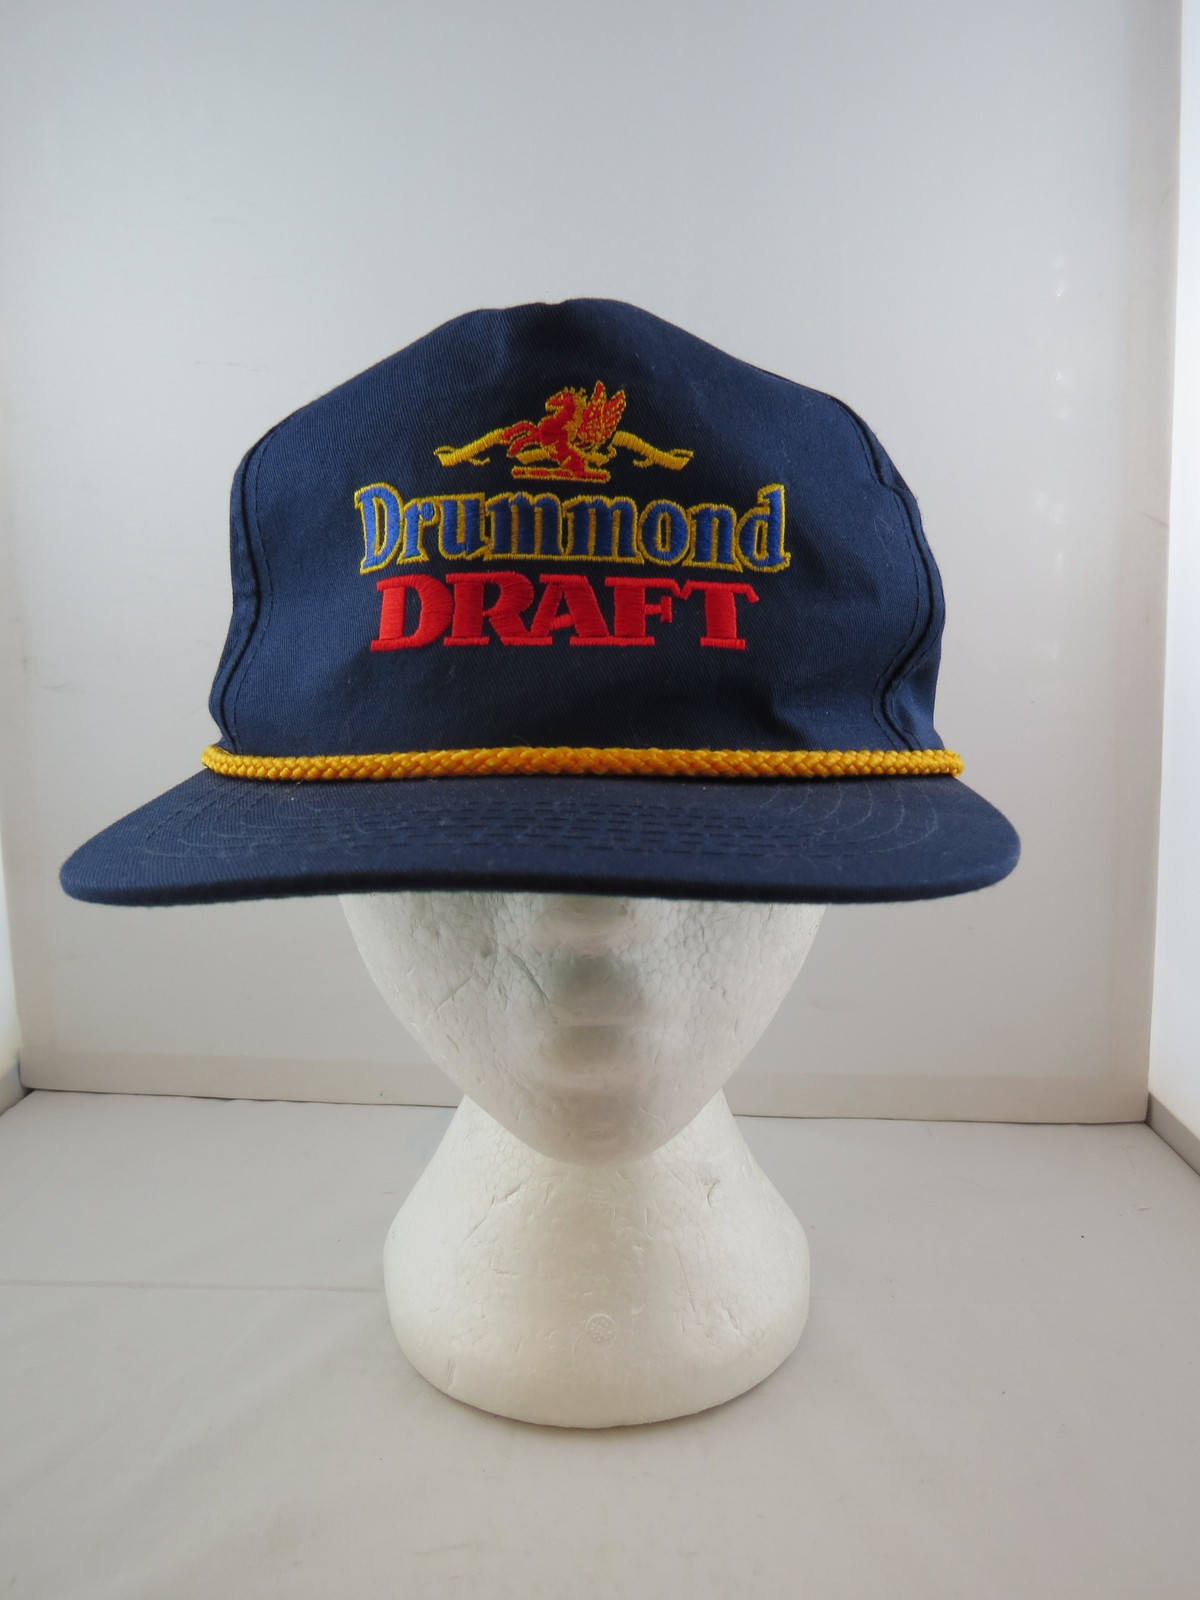 70fb568a96b13 Vintage Canadian Beer Hat - Drummond Draft and 50 similar items